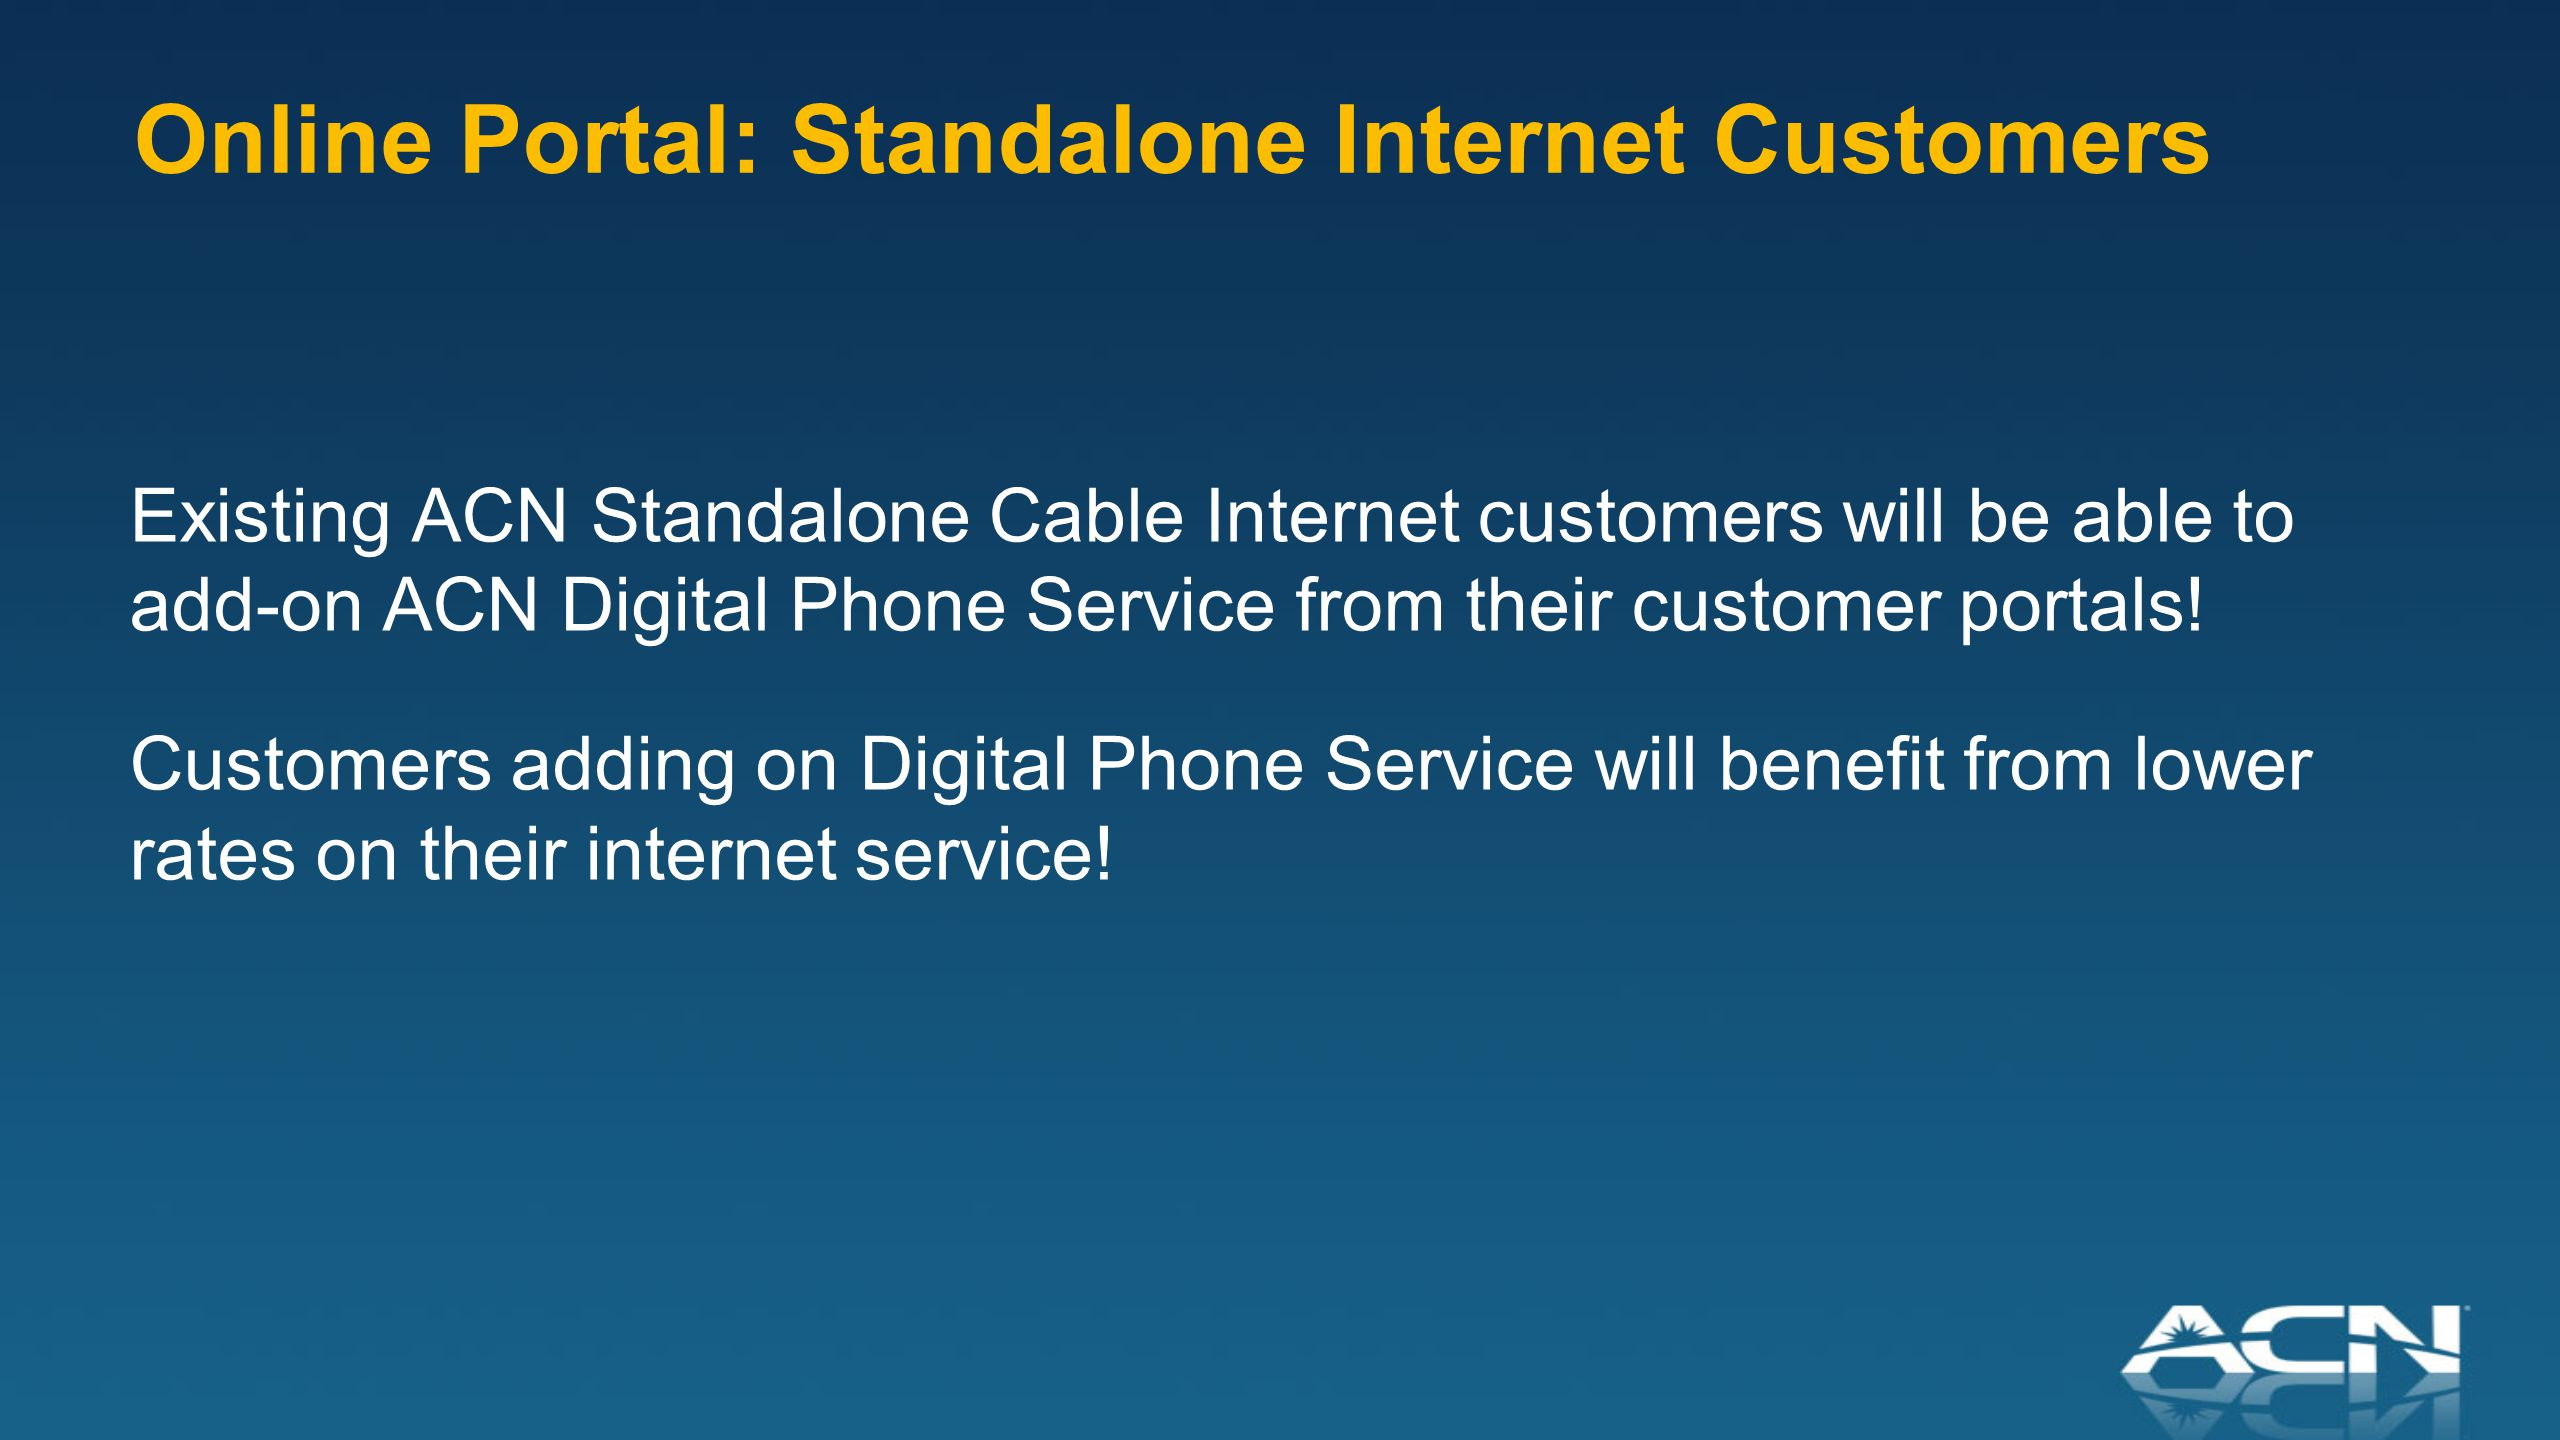 Existing ACN Standalone Cable Internet customers will be able to add-on ACN Digital Phone Service from their customer portals.